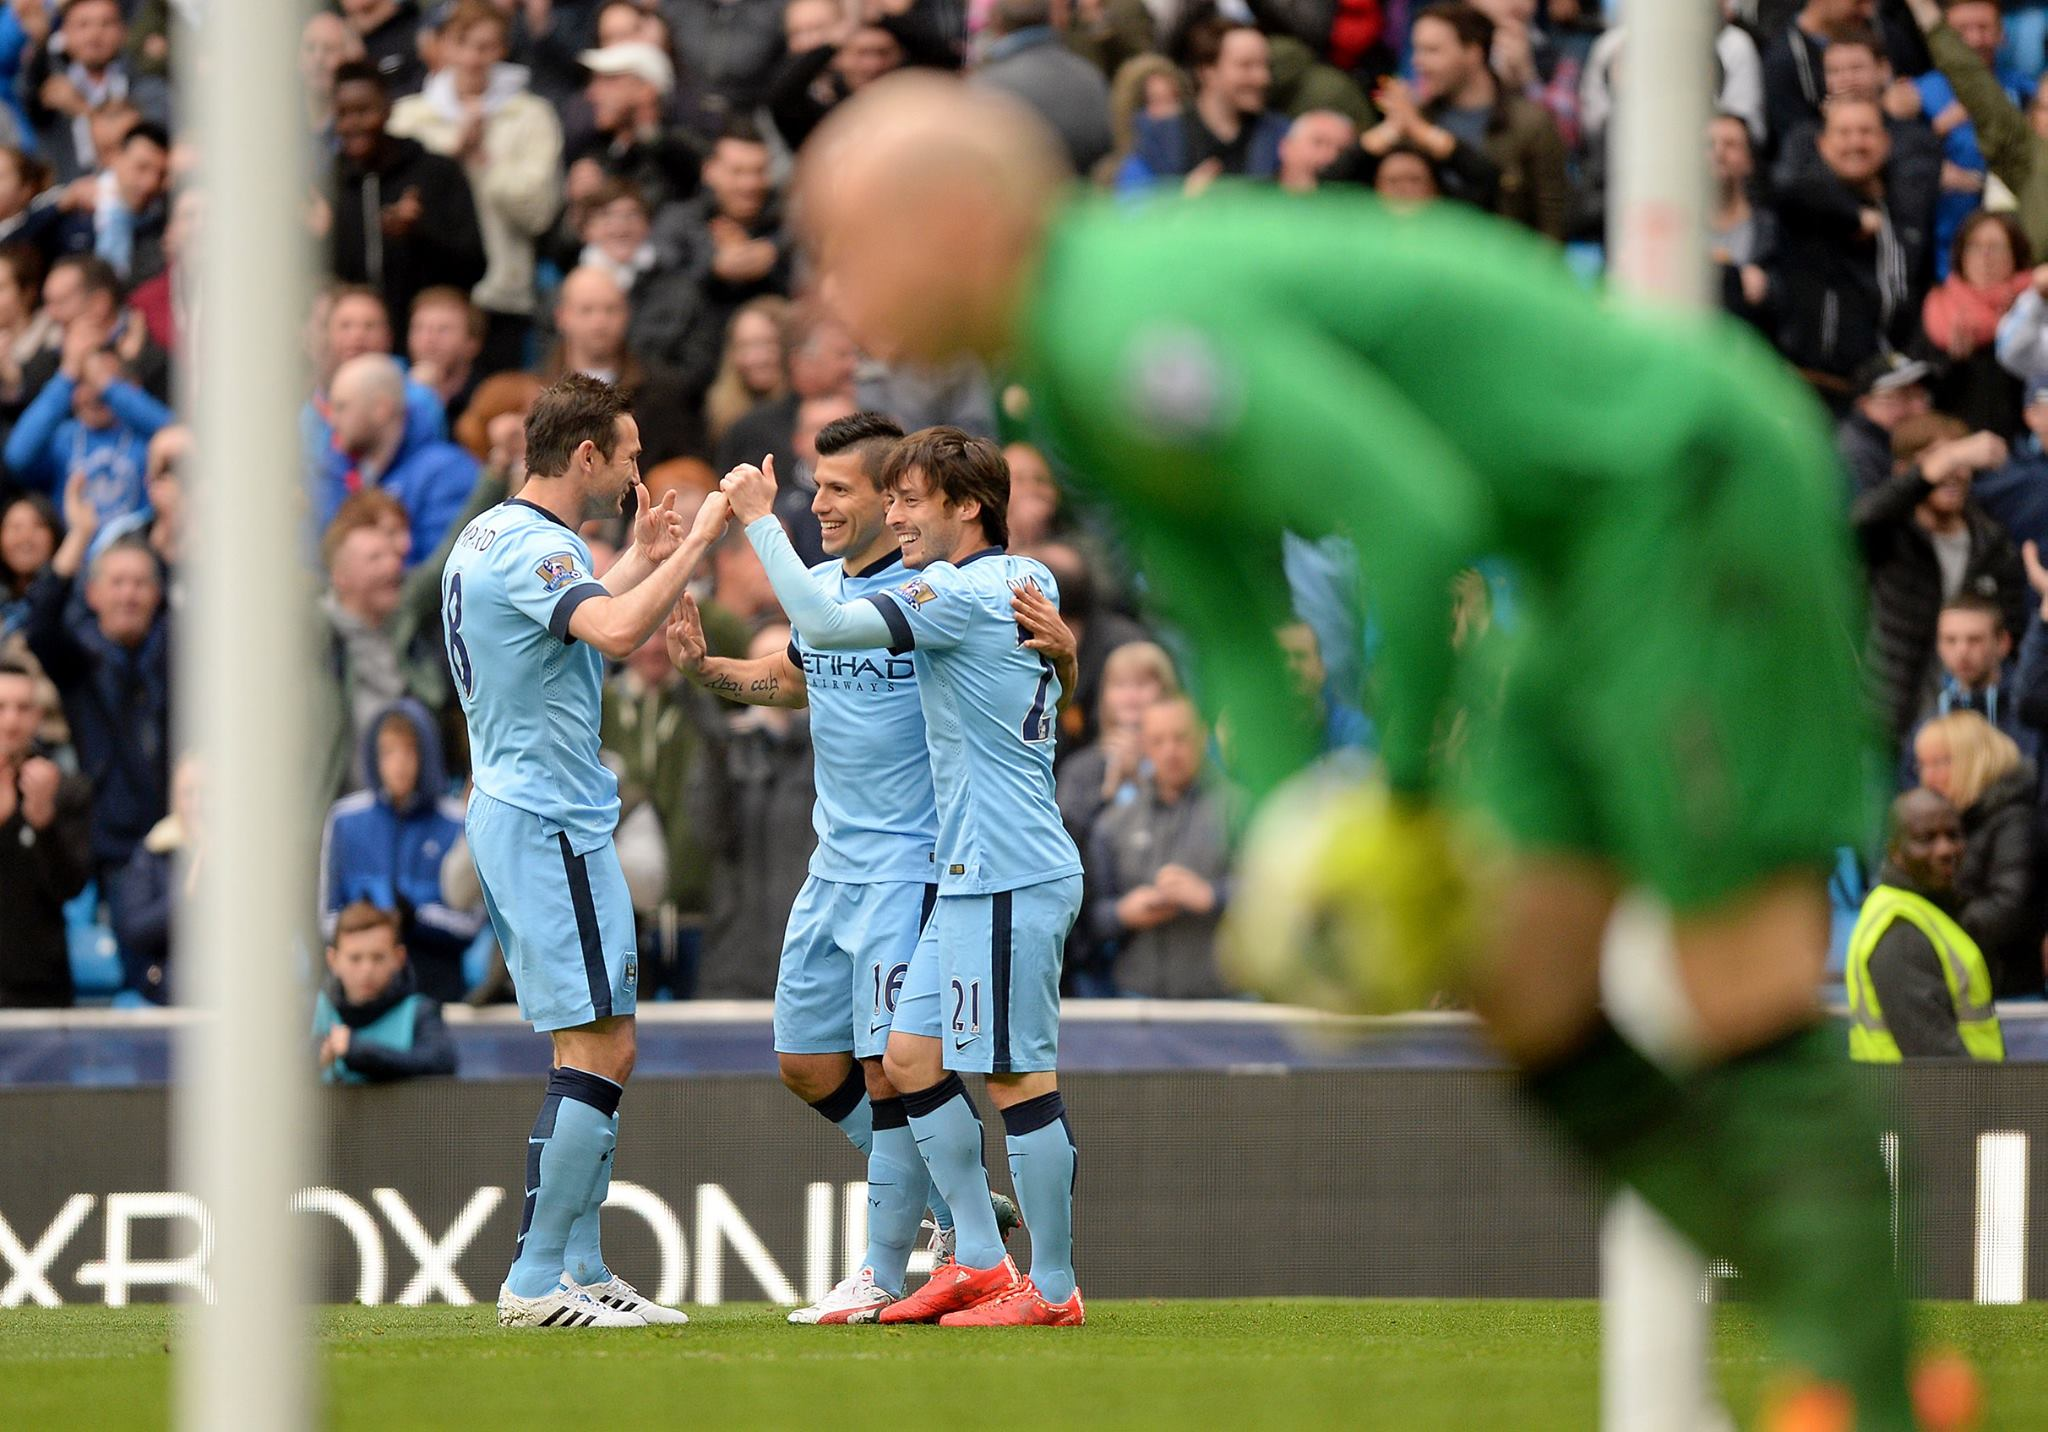 The joy of giving - Brad Guzan earned an assist for Aguero's opening goal. Courtesy@MCFC